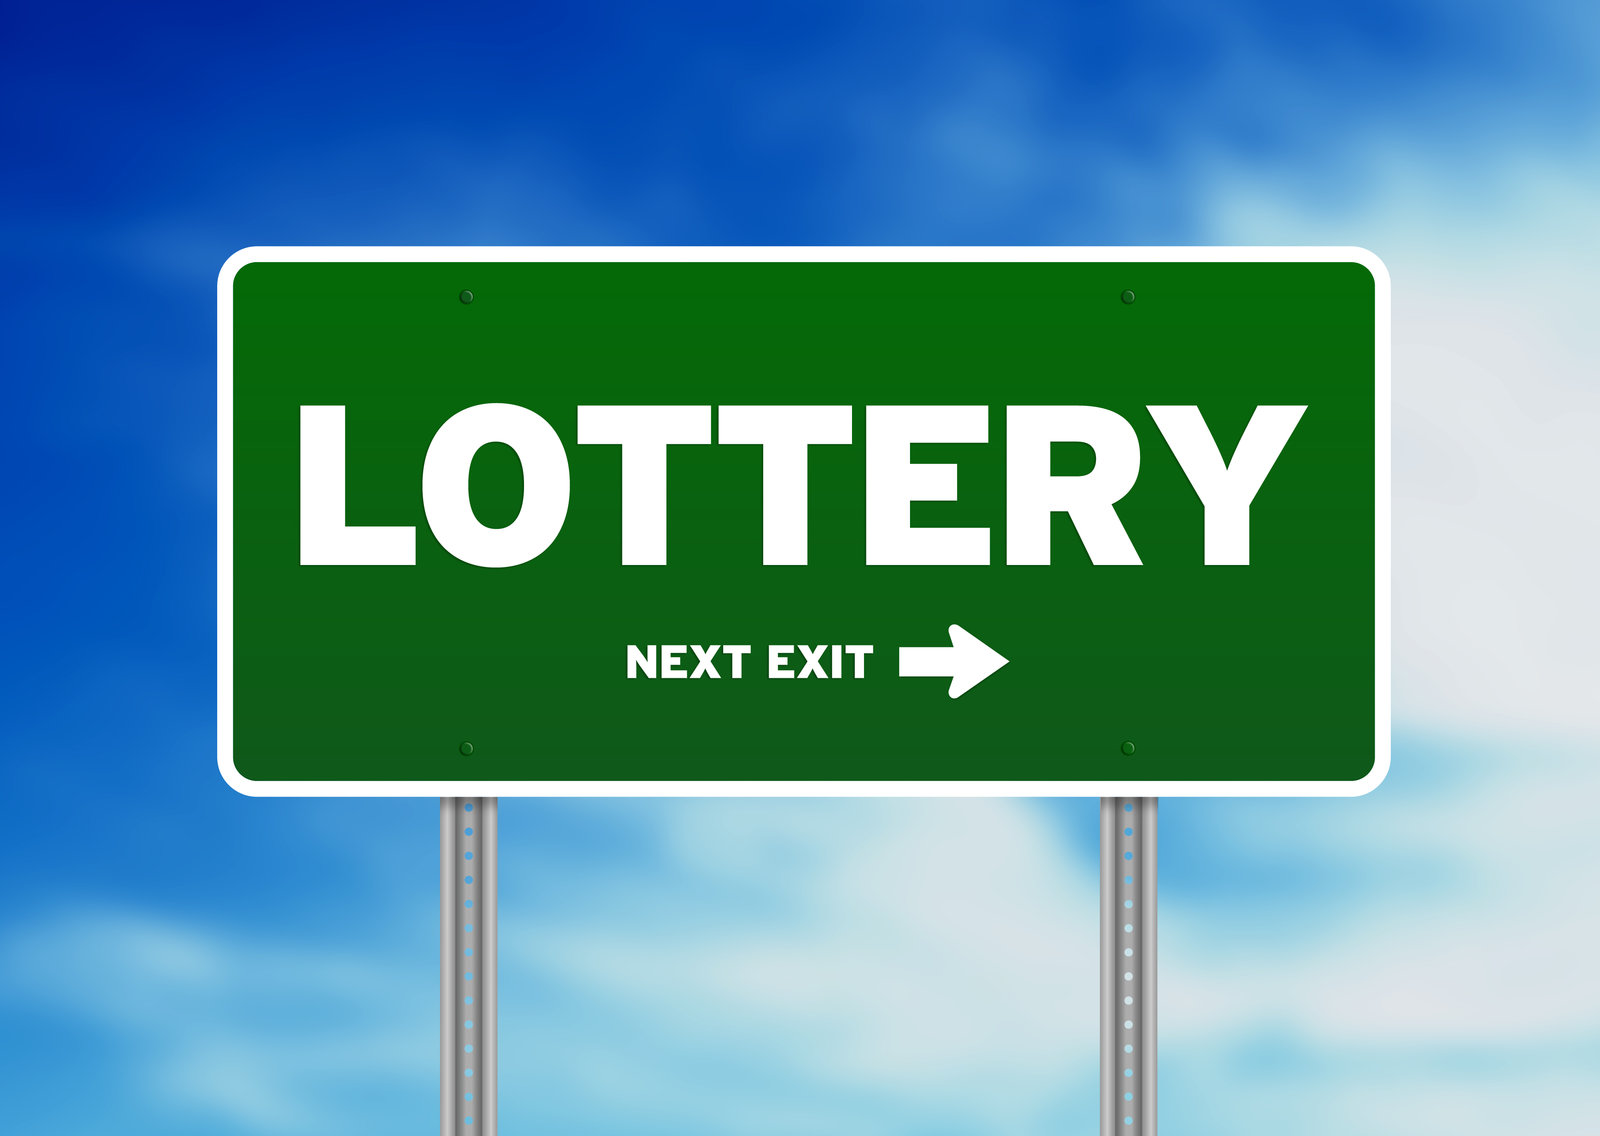 Lottery sign